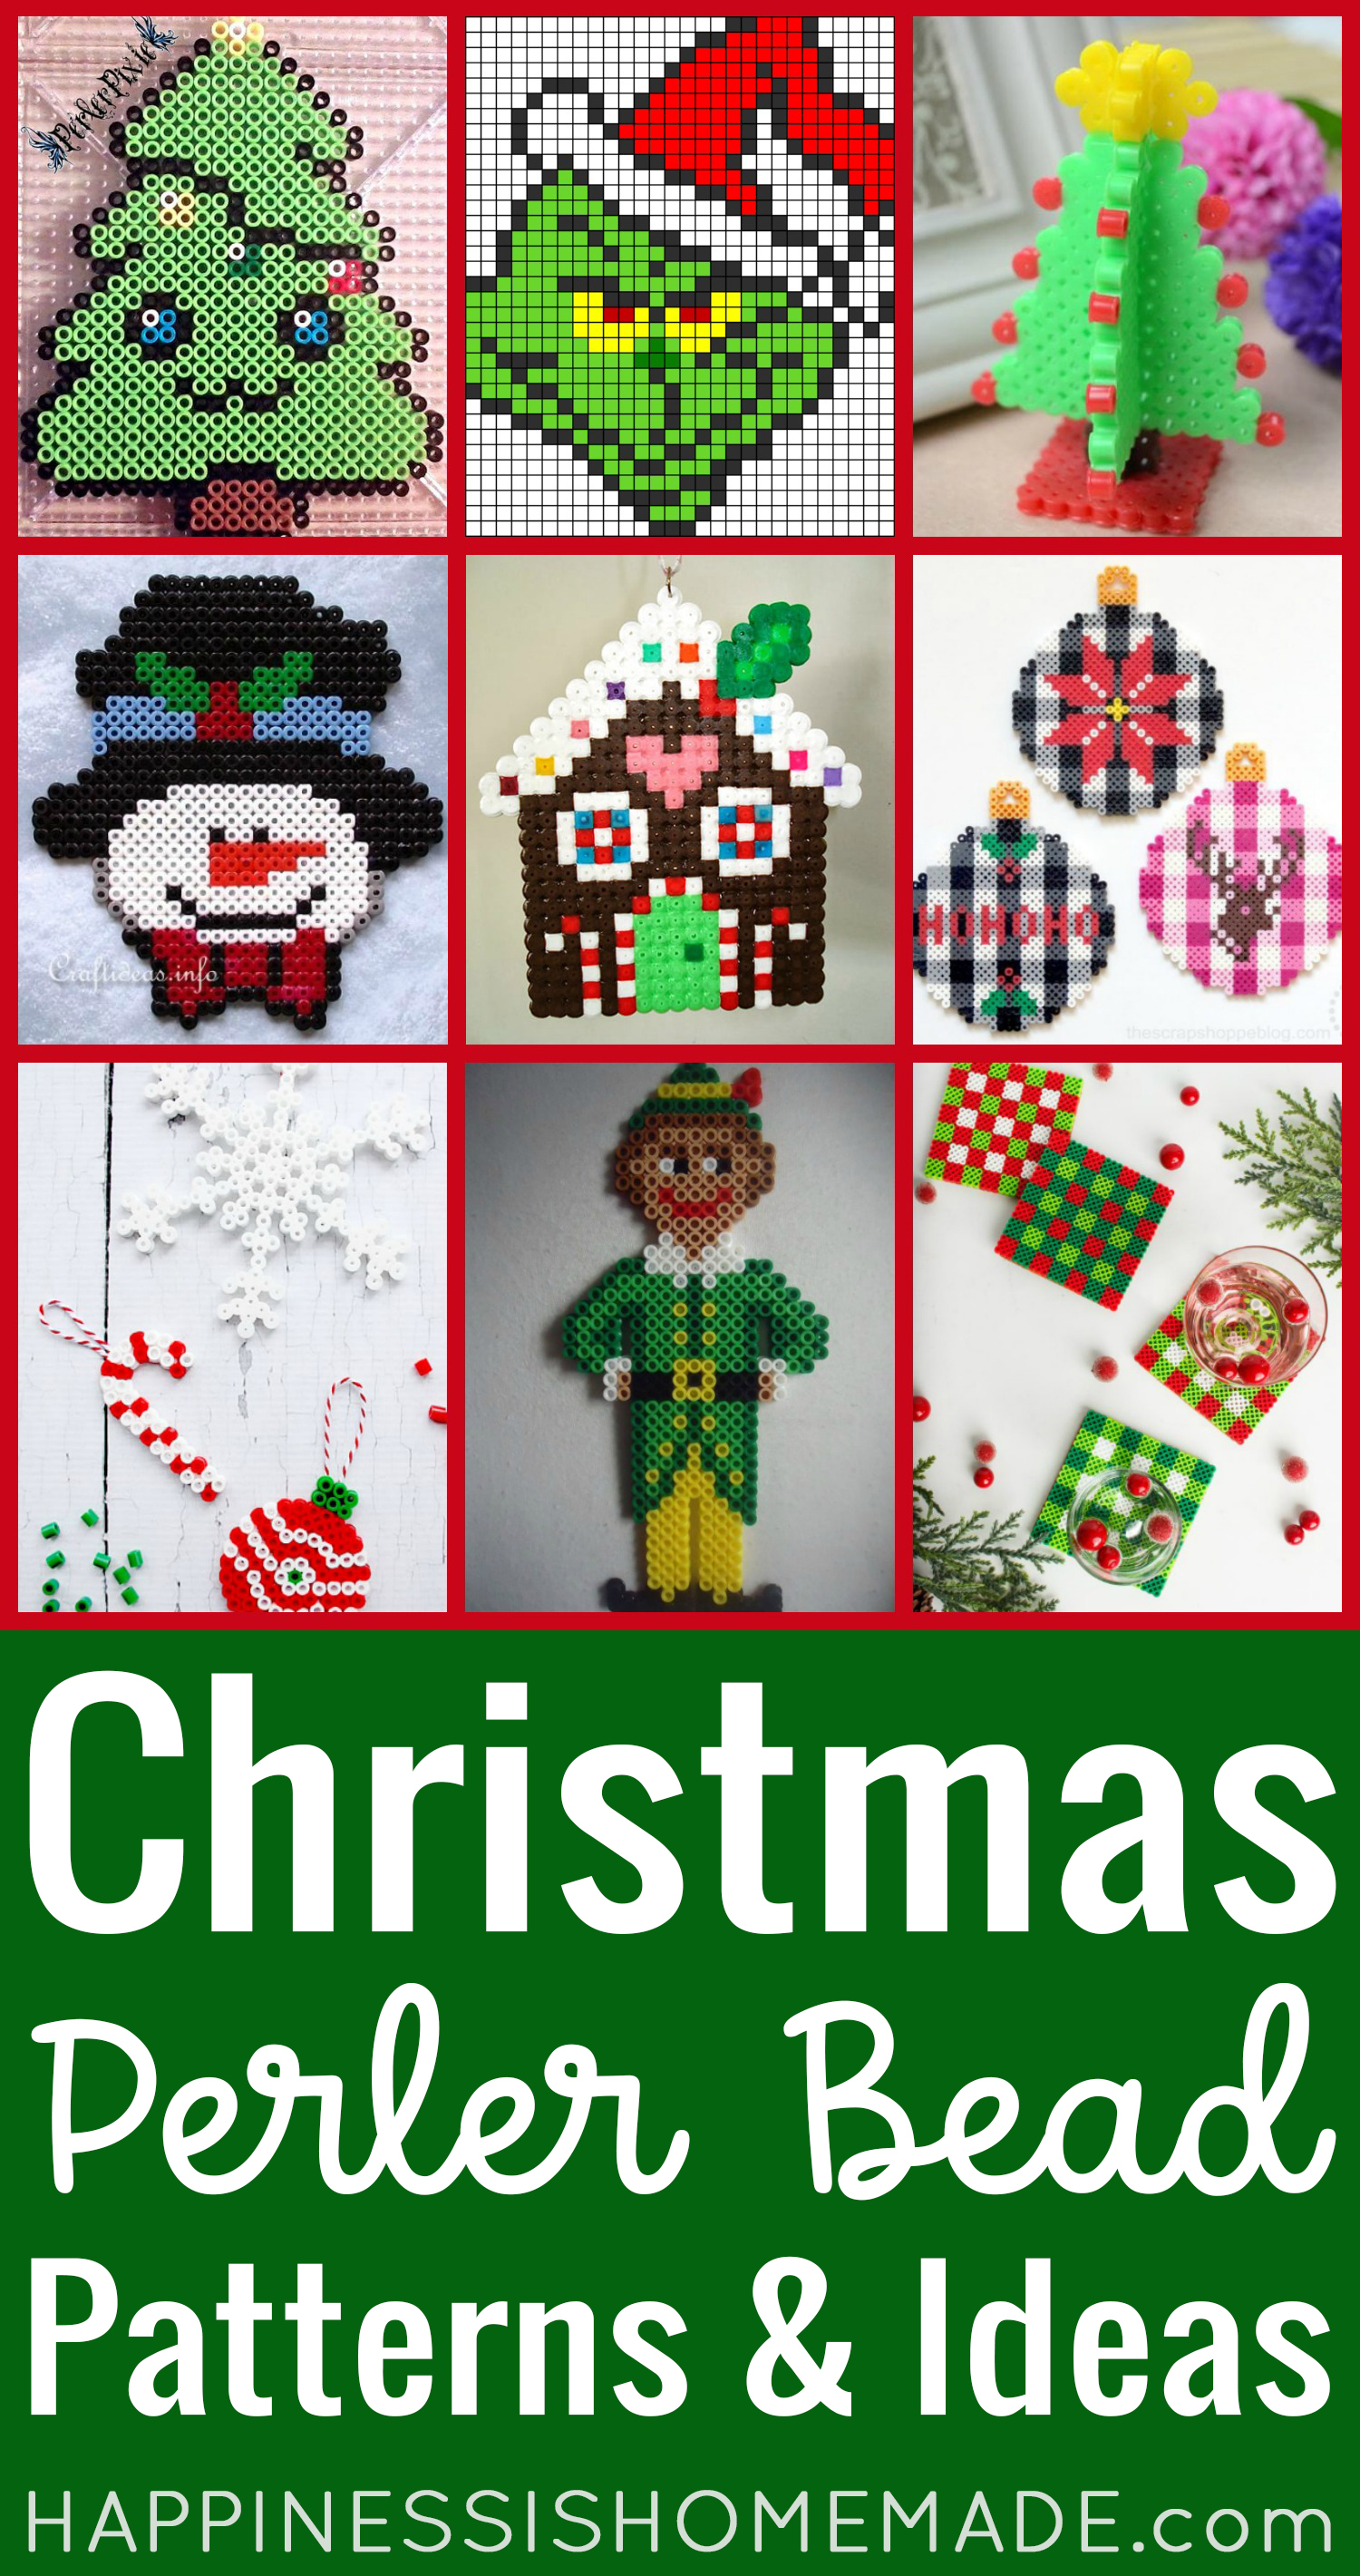 Christmas Perler Bead Patterns and ideas